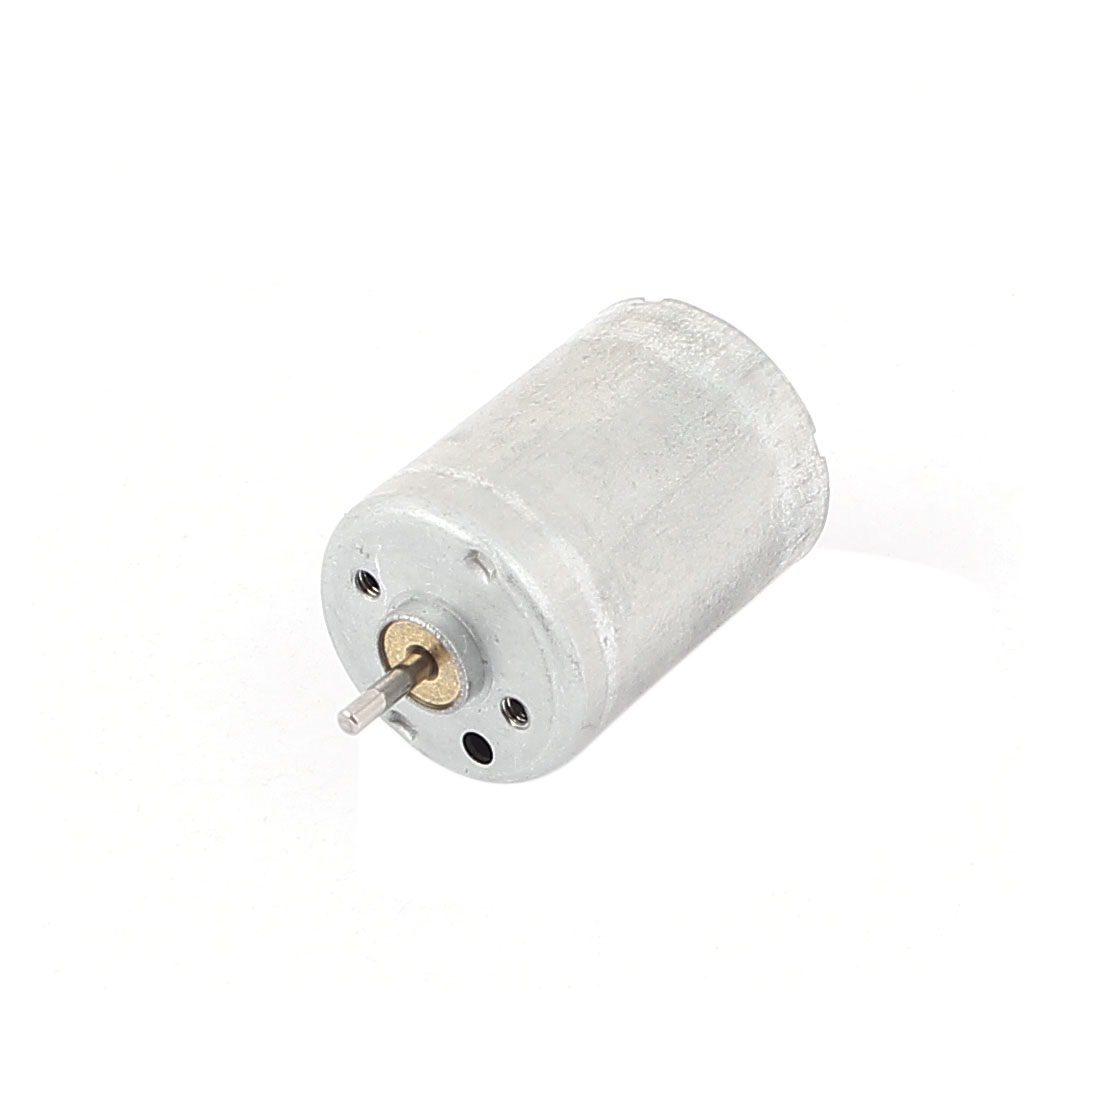 DC 1.5-9V 7400RPM Magnetic Electric Micro Motor for DIY Toys Models